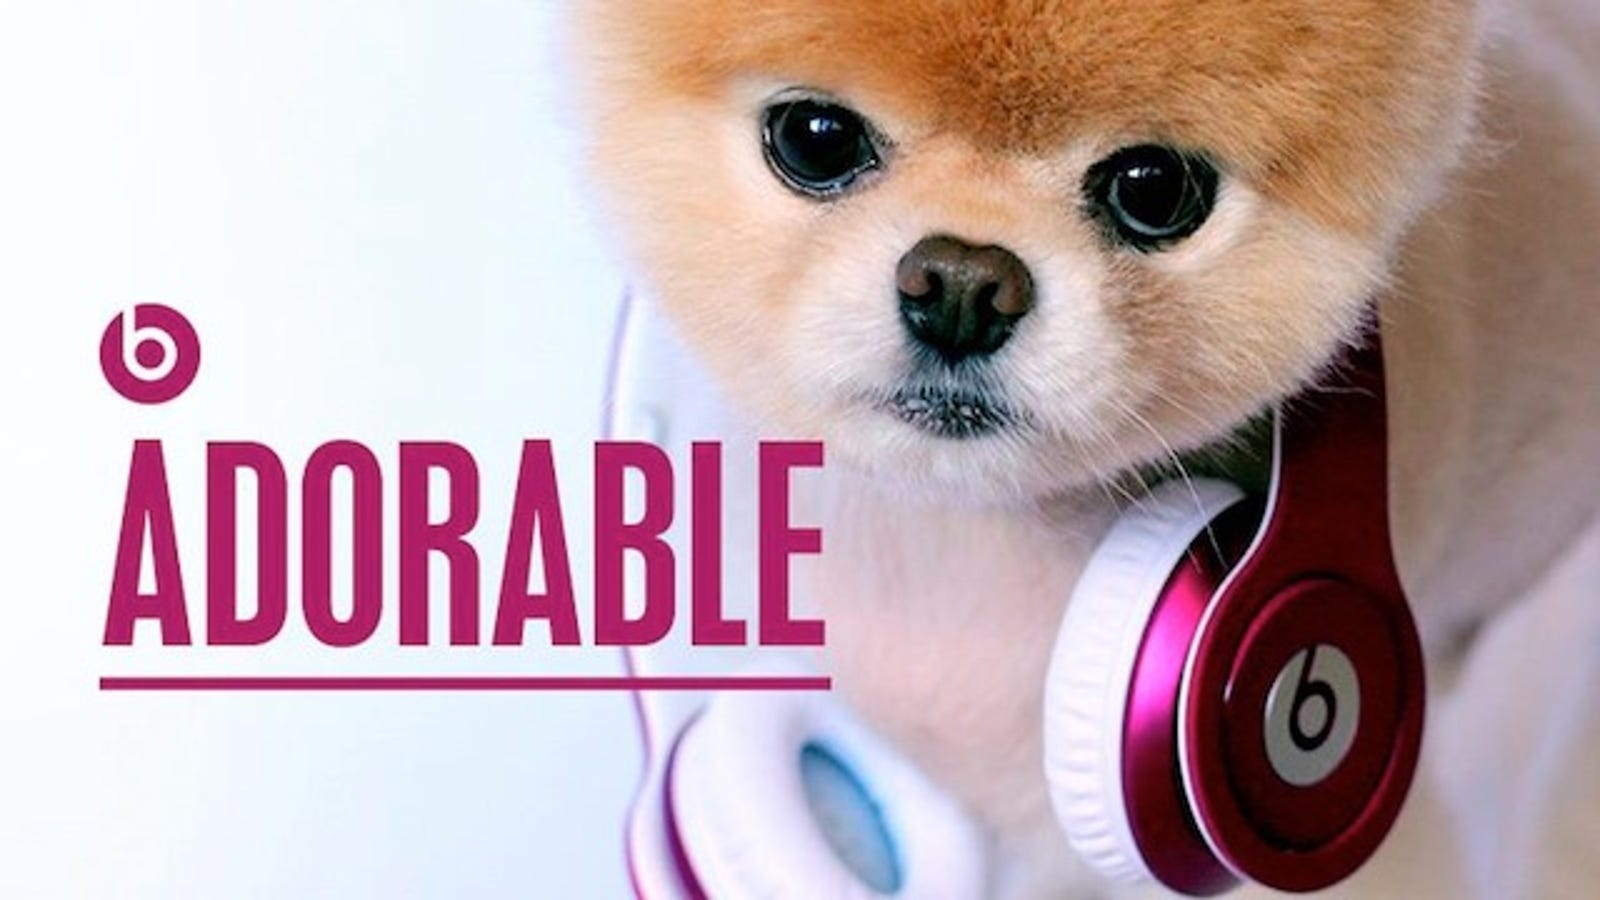 comfortable earbuds for small ears - Internet's Cutest Dog Endorses World's Dumbest Headphones